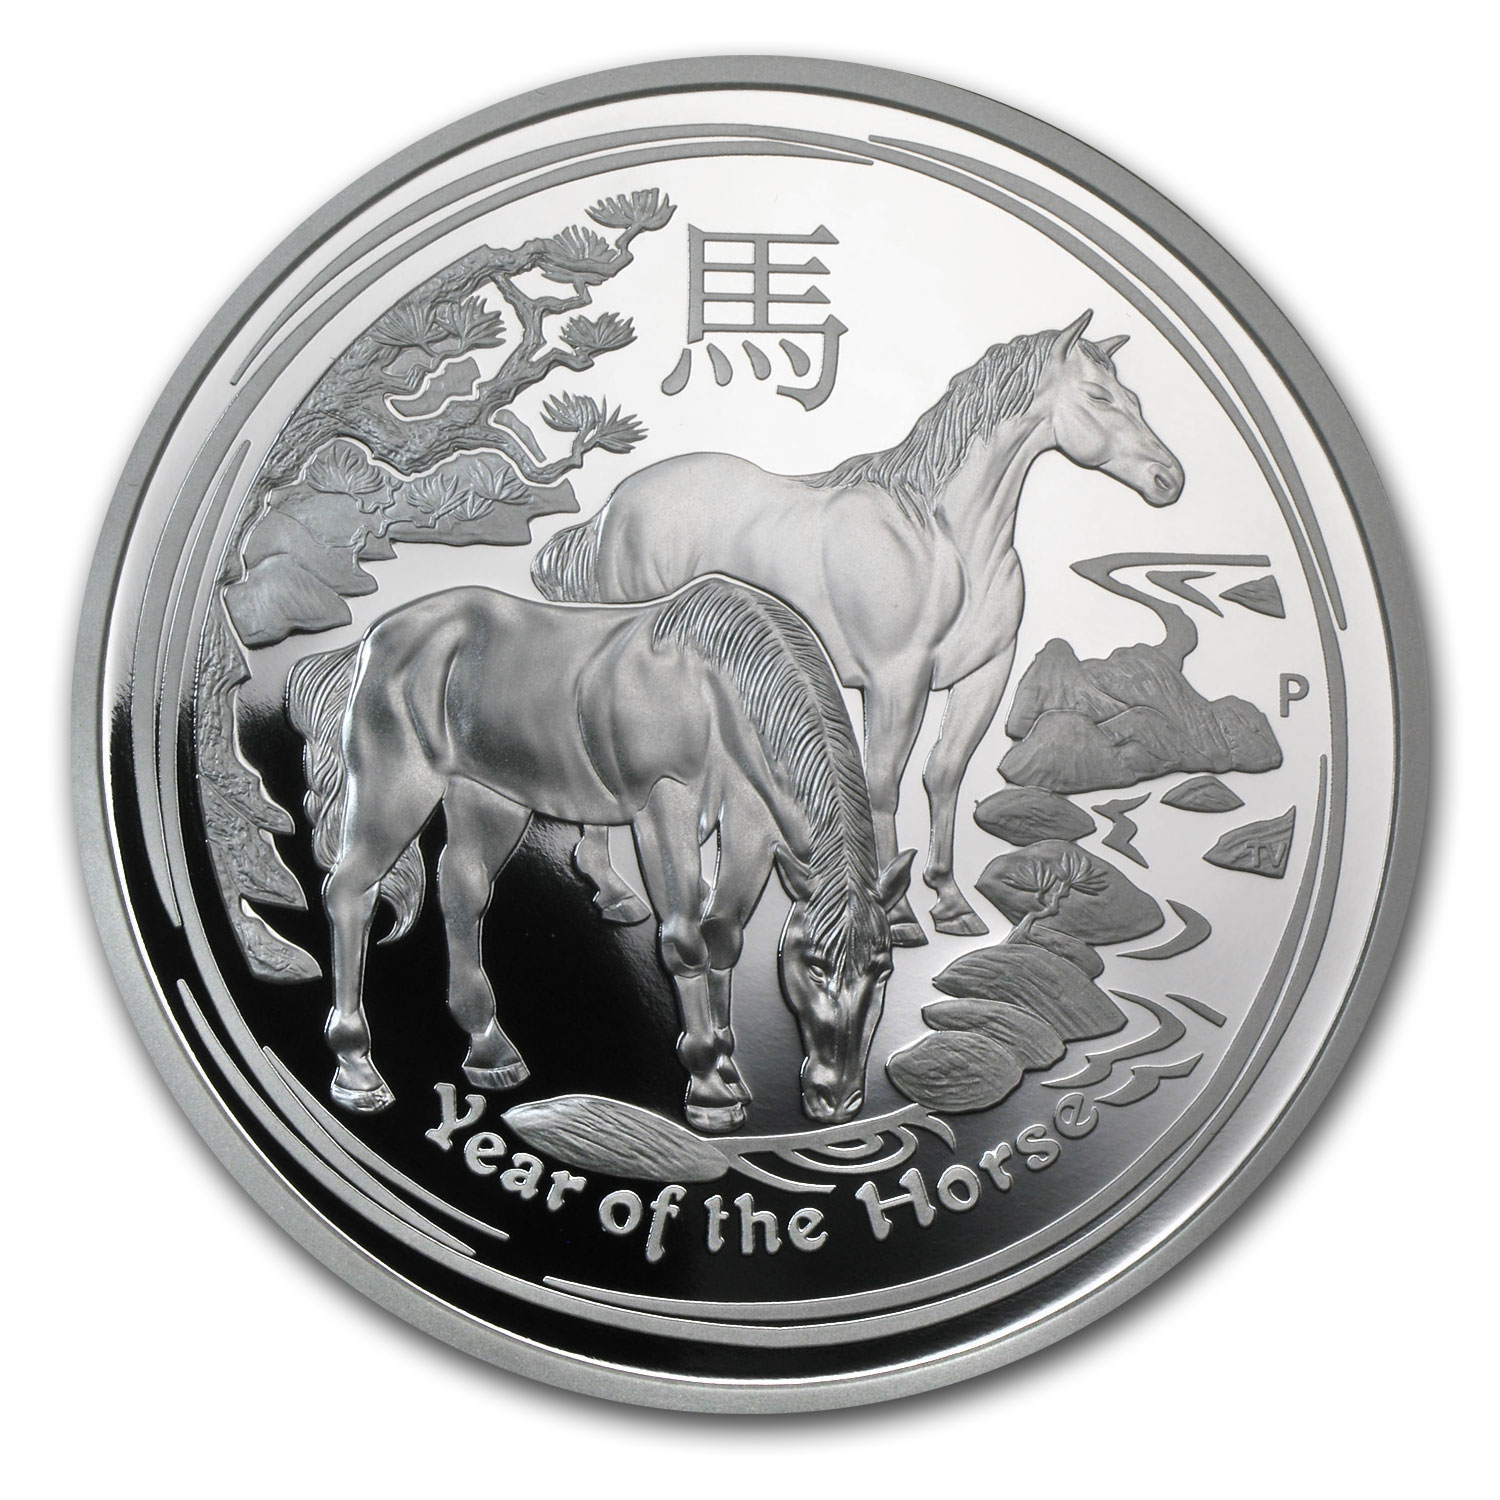 2014 Year of the Horse - 5 oz Proof Silver Coin (Series II)